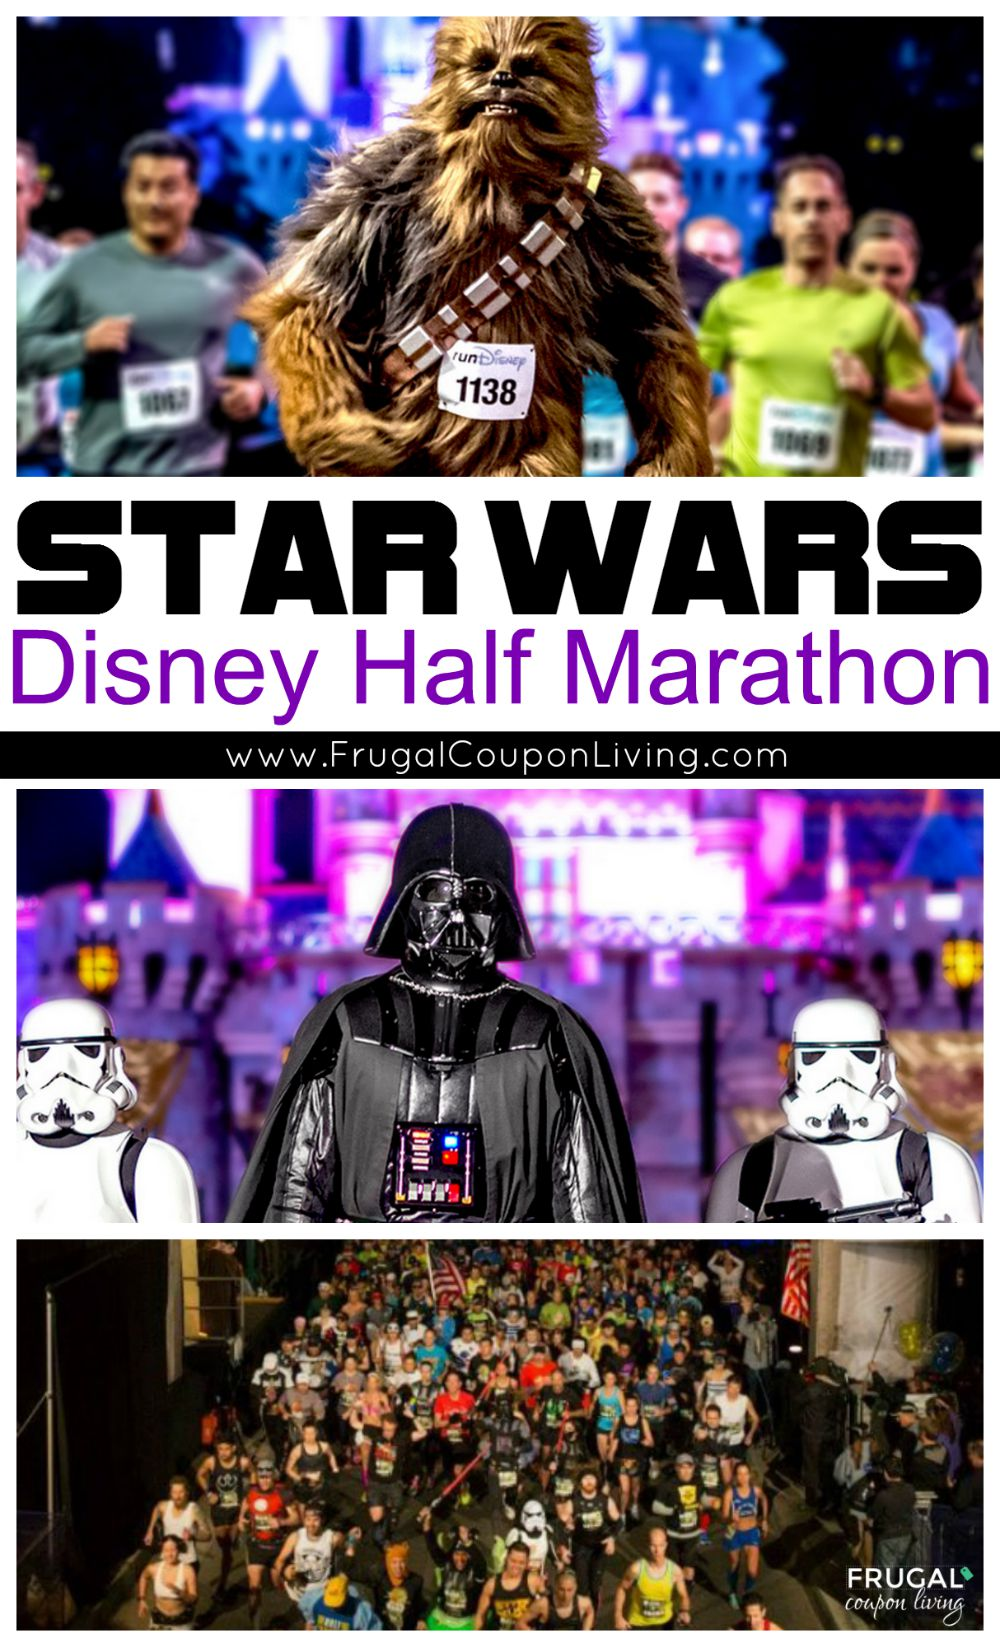 Disney Star Wars Half Marathon Frugal Coupon Living